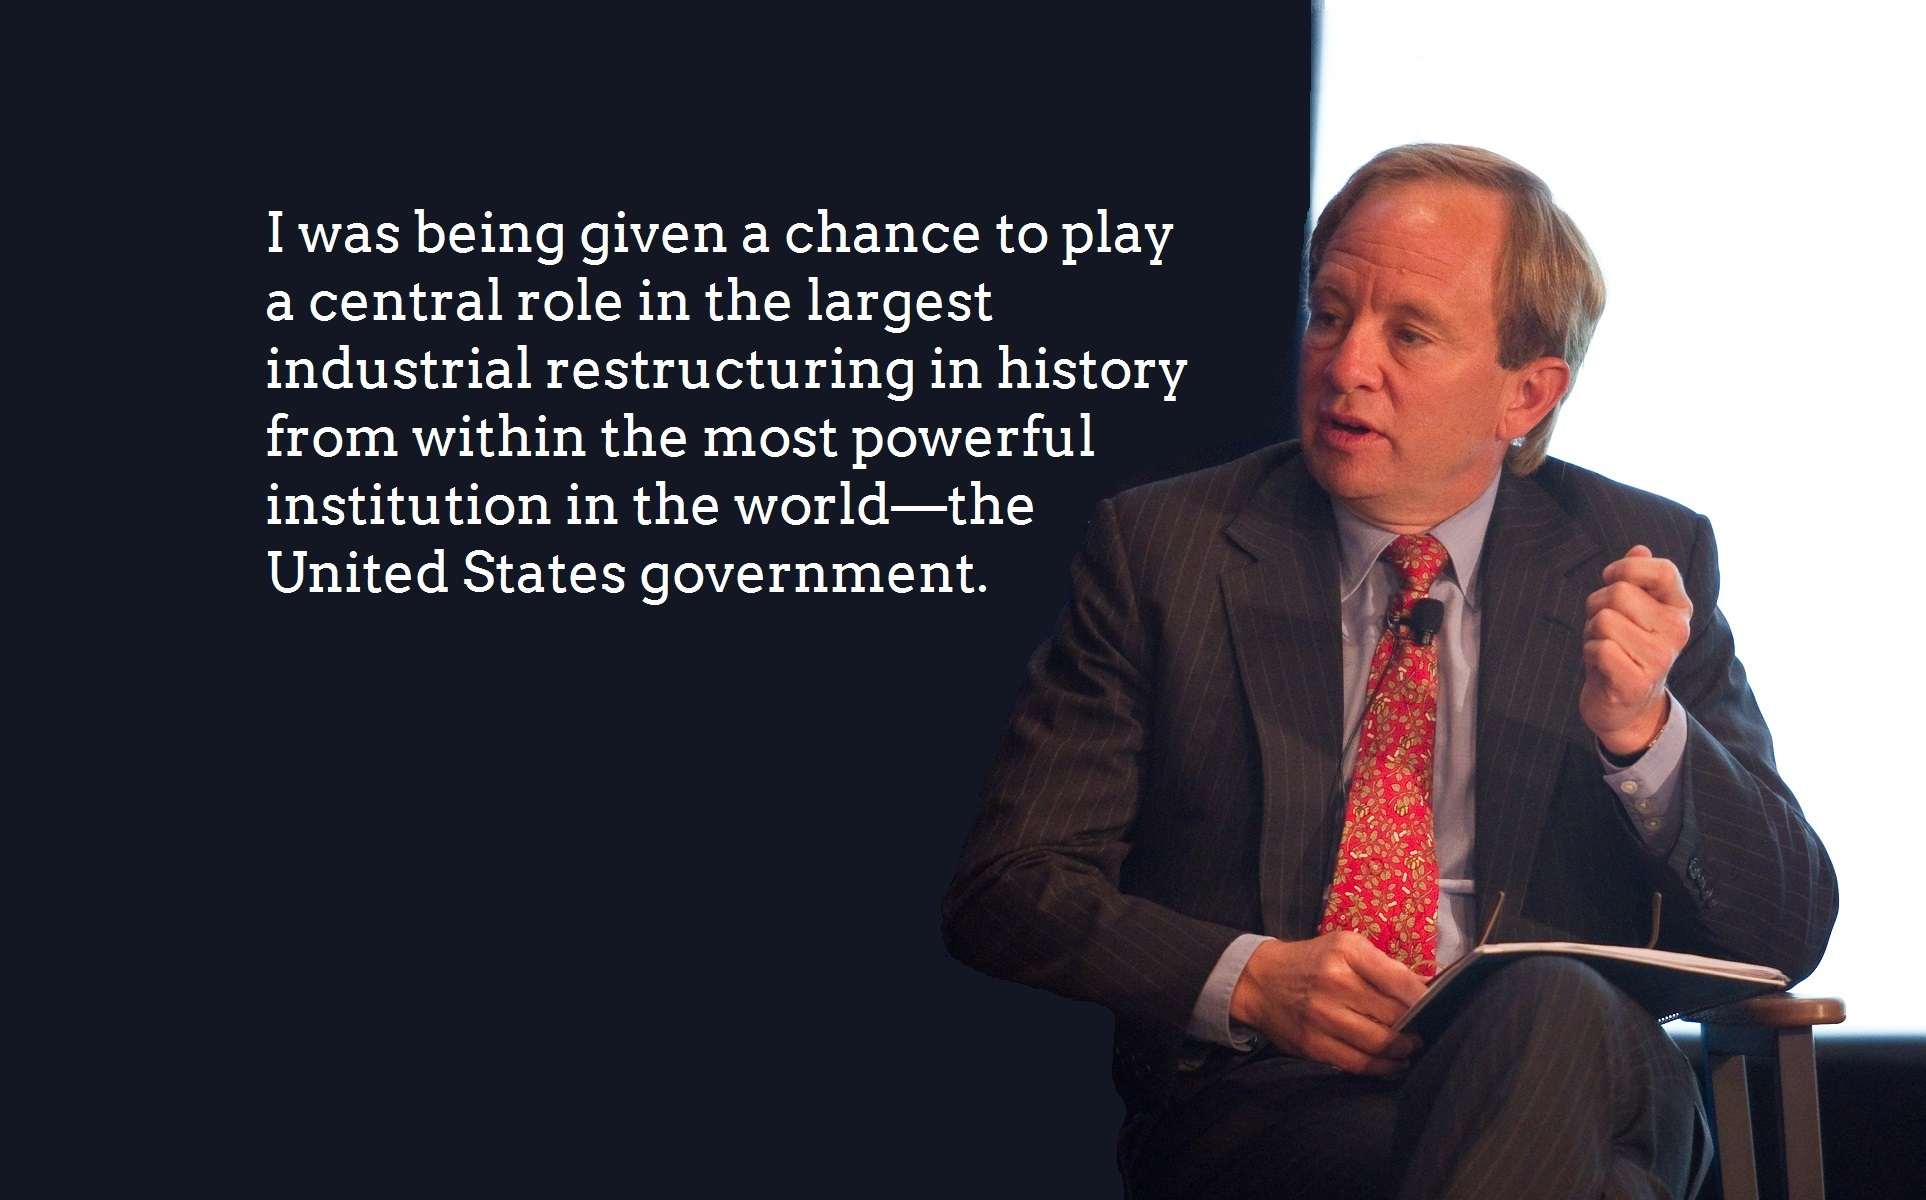 Steve Rattner seated